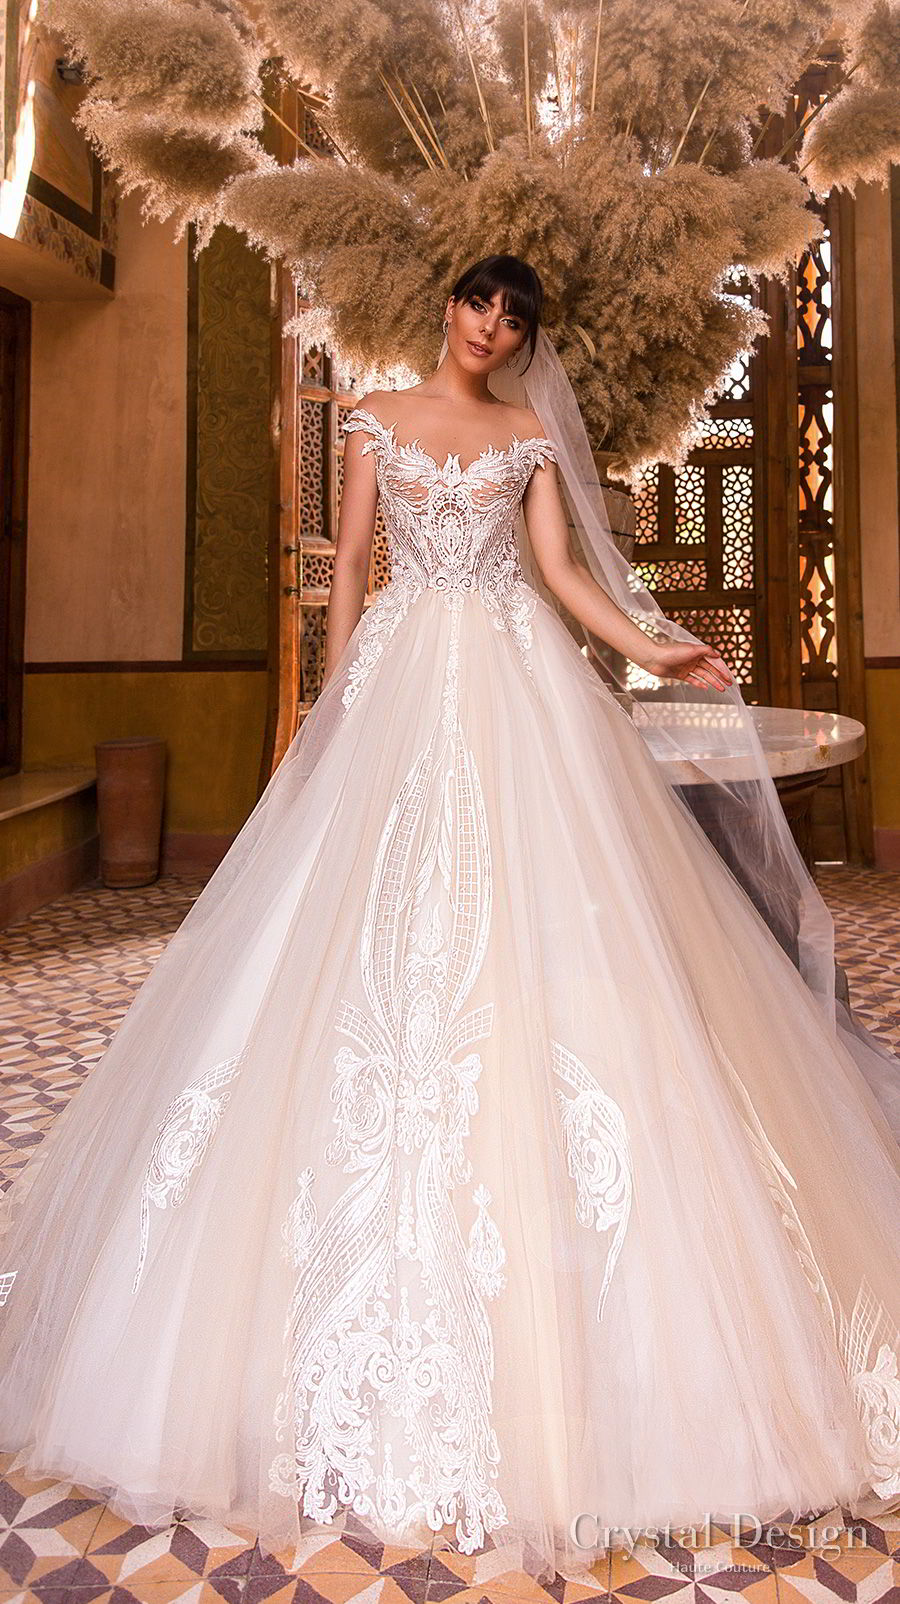 crystal design 2018 off the shoulder scoop neck heavily embellished bodice princess ball gown wedding dress lace back royal train (sushine) mv